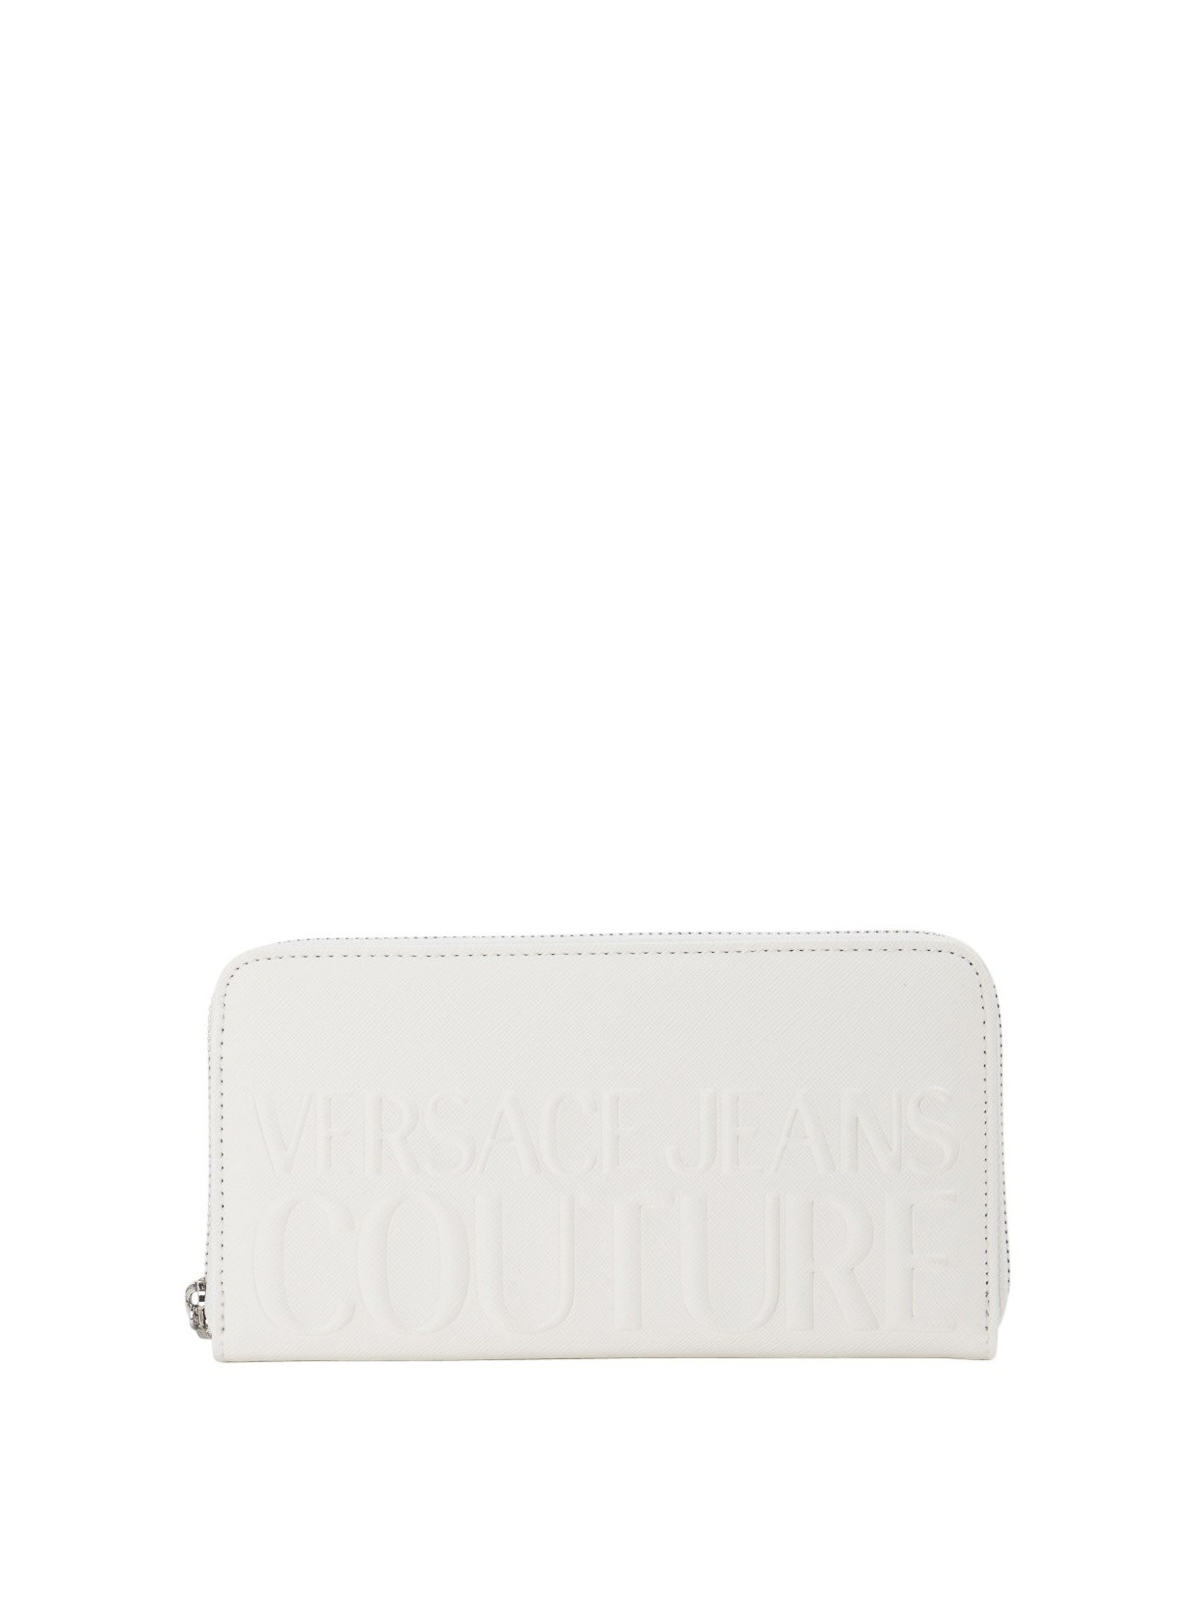 Versace Jeans Couture Wallets EMBOSSED LOGO WALLET